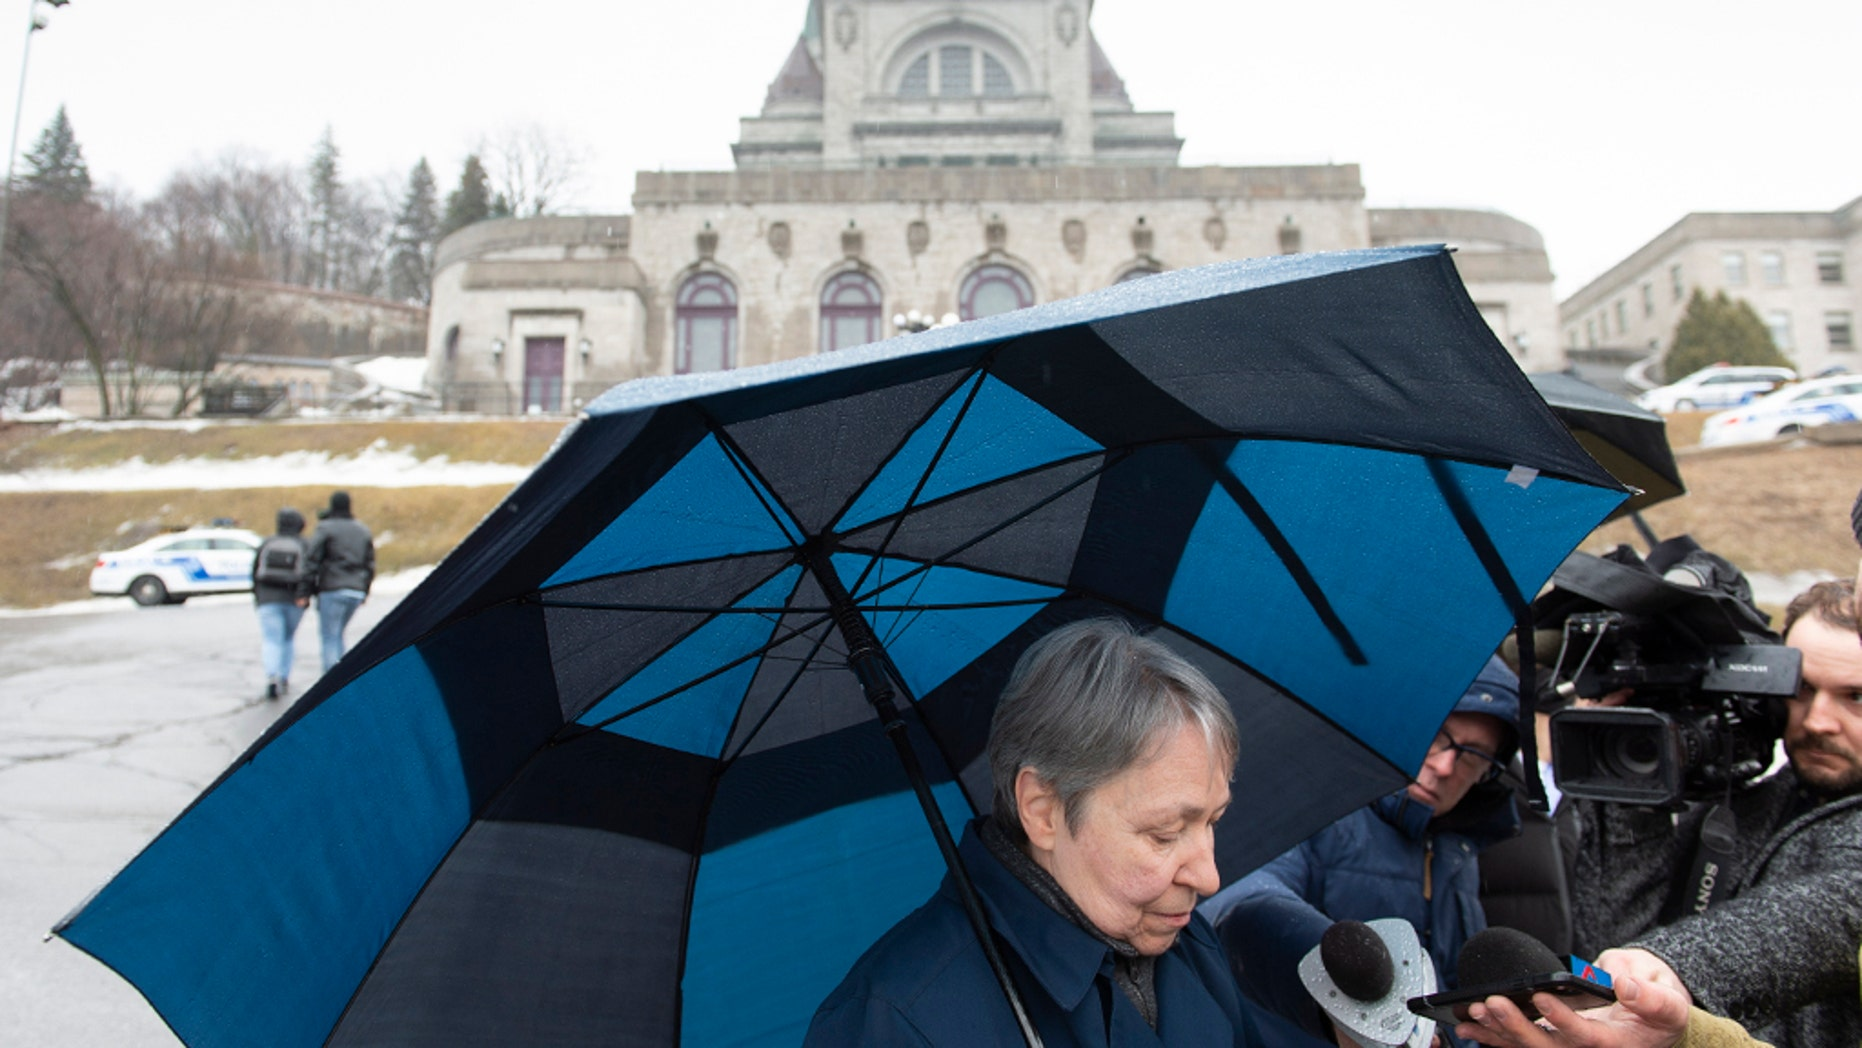 """A woman talks to the media at the scene where a Catholic priest was stabbed for celebrating the morning Mass on Friday, March 22, 201<div class=""""e3lan e3lan-in-post1""""><script async src=""""//pagead2.googlesyndication.com/pagead/js/adsbygoogle.js""""></script> <!-- Text_Display_Responsive --> <ins class=""""adsbygoogle""""      style=""""display:block""""      data-ad-client=""""ca-pub-6192903739091894""""      data-ad-slot=""""3136787391""""      data-ad-format=""""auto""""      data-full-width-responsive=""""true""""></ins> <script> (adsbygoogle = window.adsbygoogle    []).push({}); </script></div>9 at Montréges St. Joesph in Montreal."""